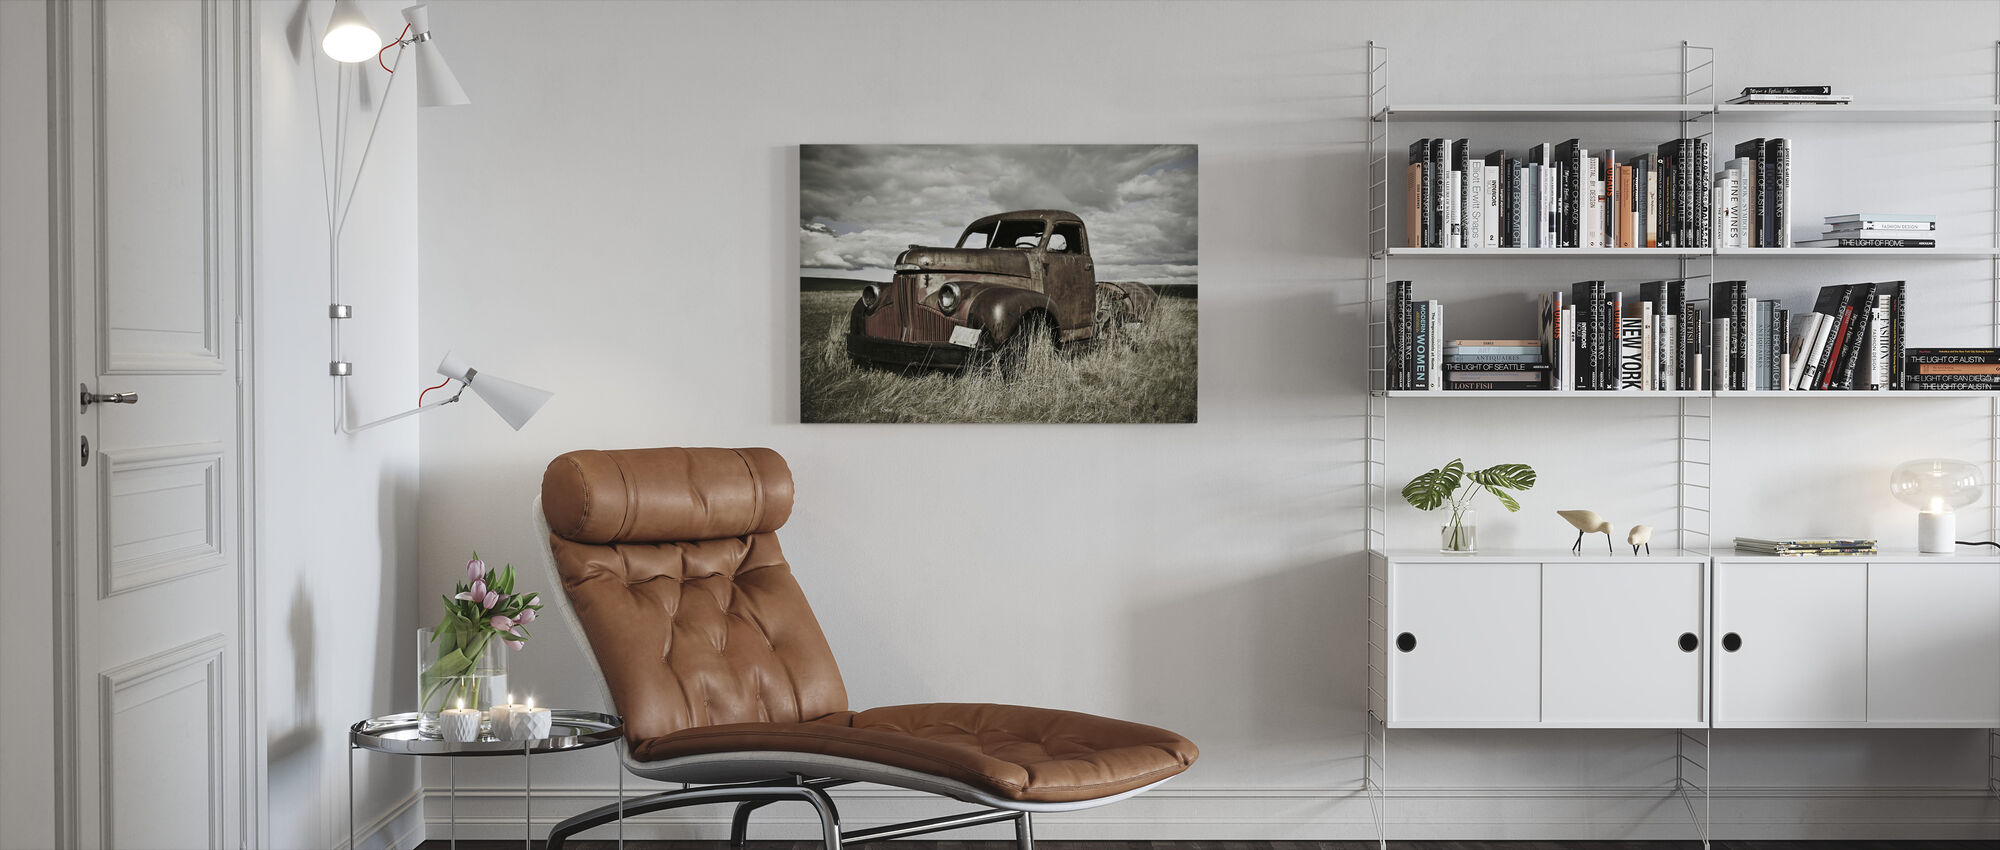 Old Truck Out in the Field - Canvas print - Living Room